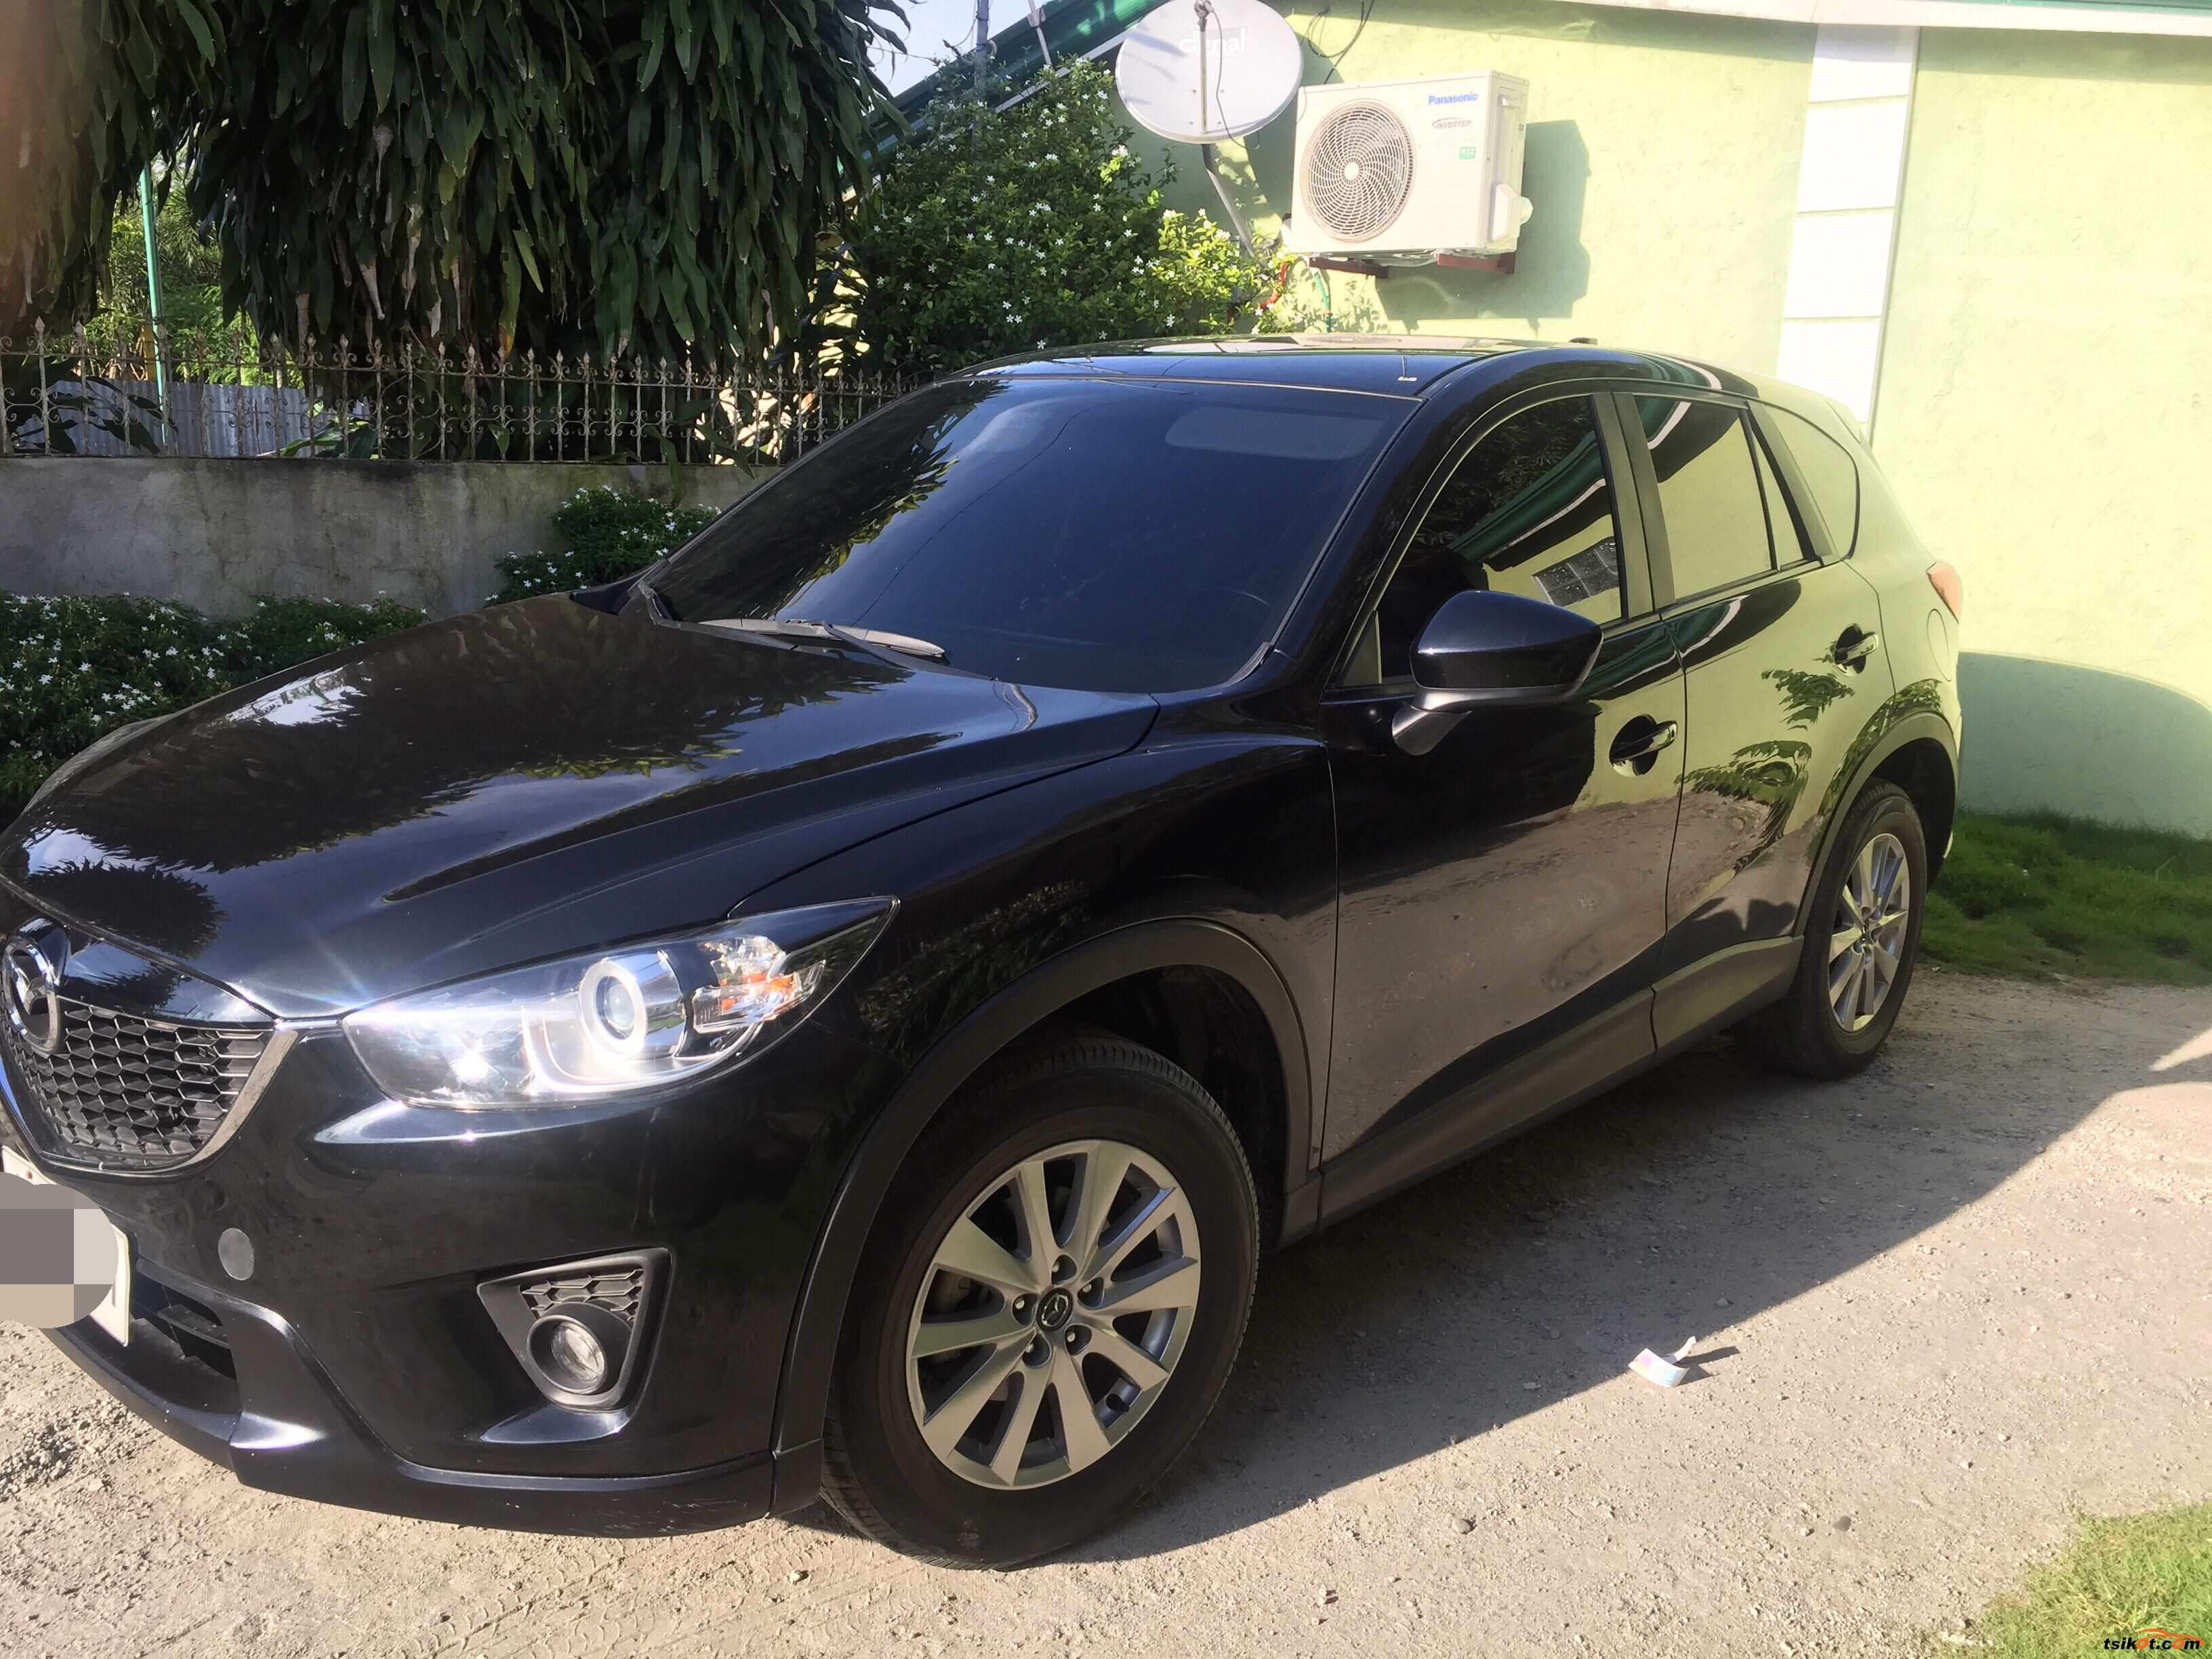 mazda cx 5 2015 car for sale metro manila philippines. Black Bedroom Furniture Sets. Home Design Ideas